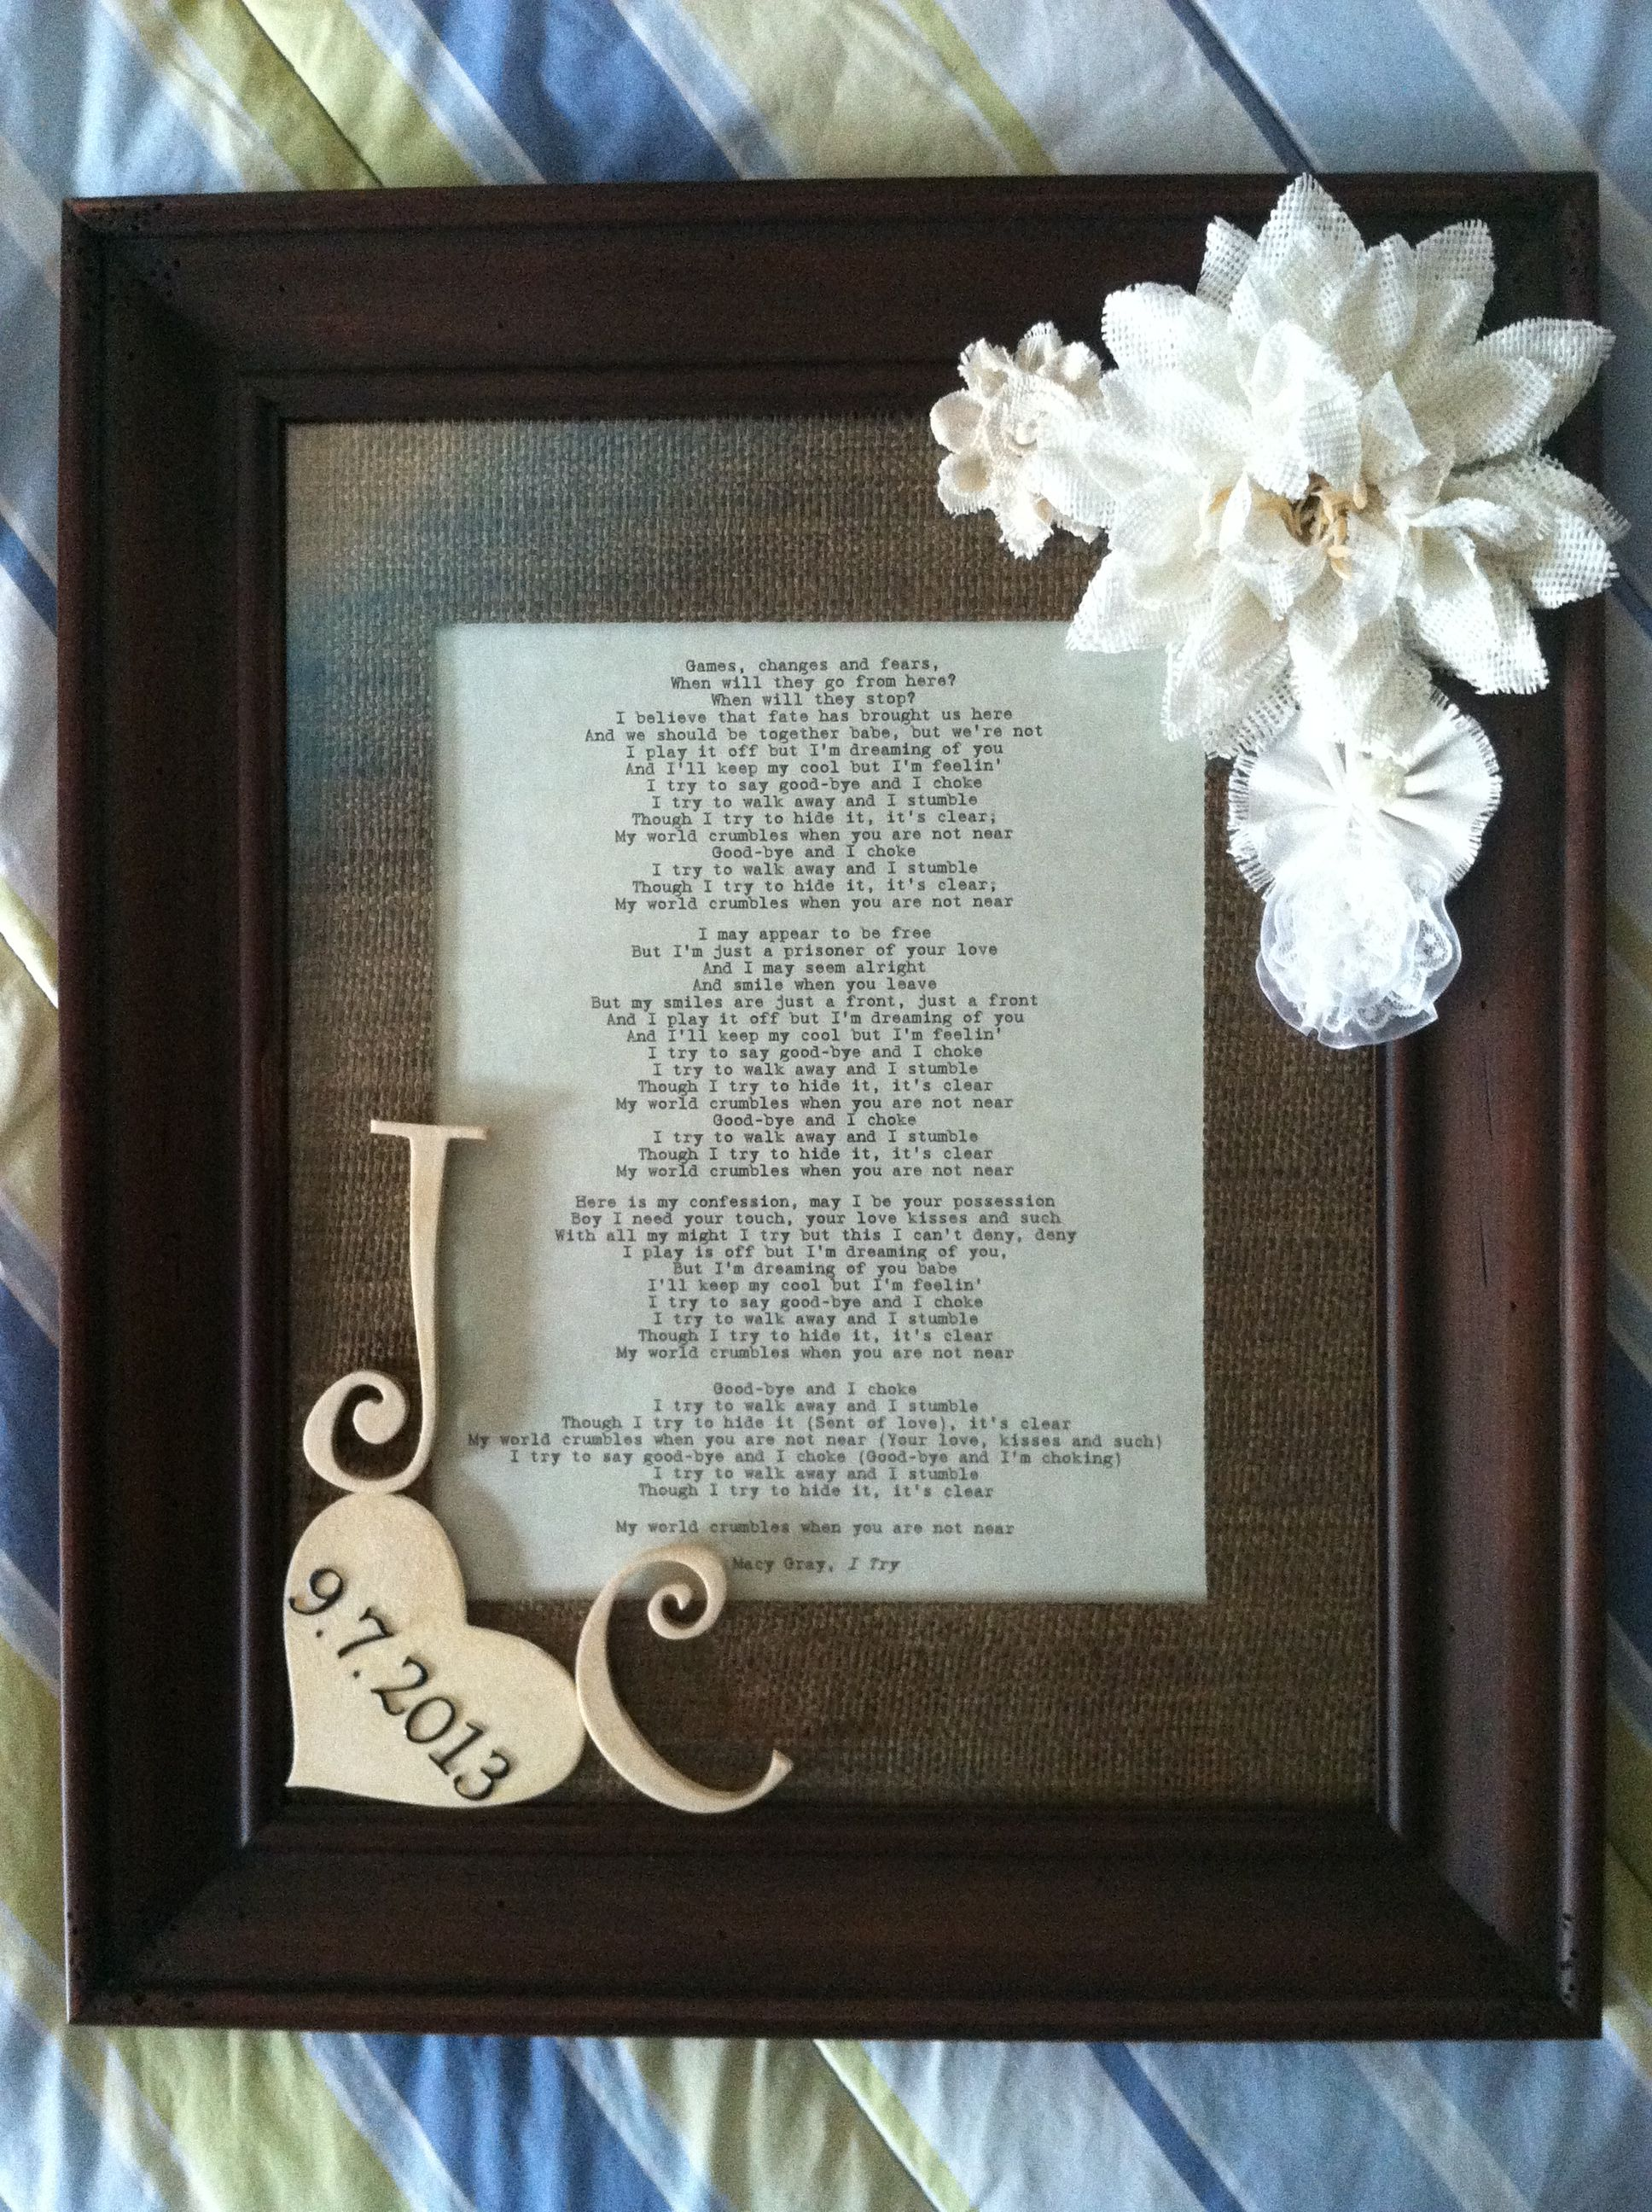 8X10 Resume Paper Fascinating Framed Wedding Song For A Burlap And Lace Themed Weddingall From .